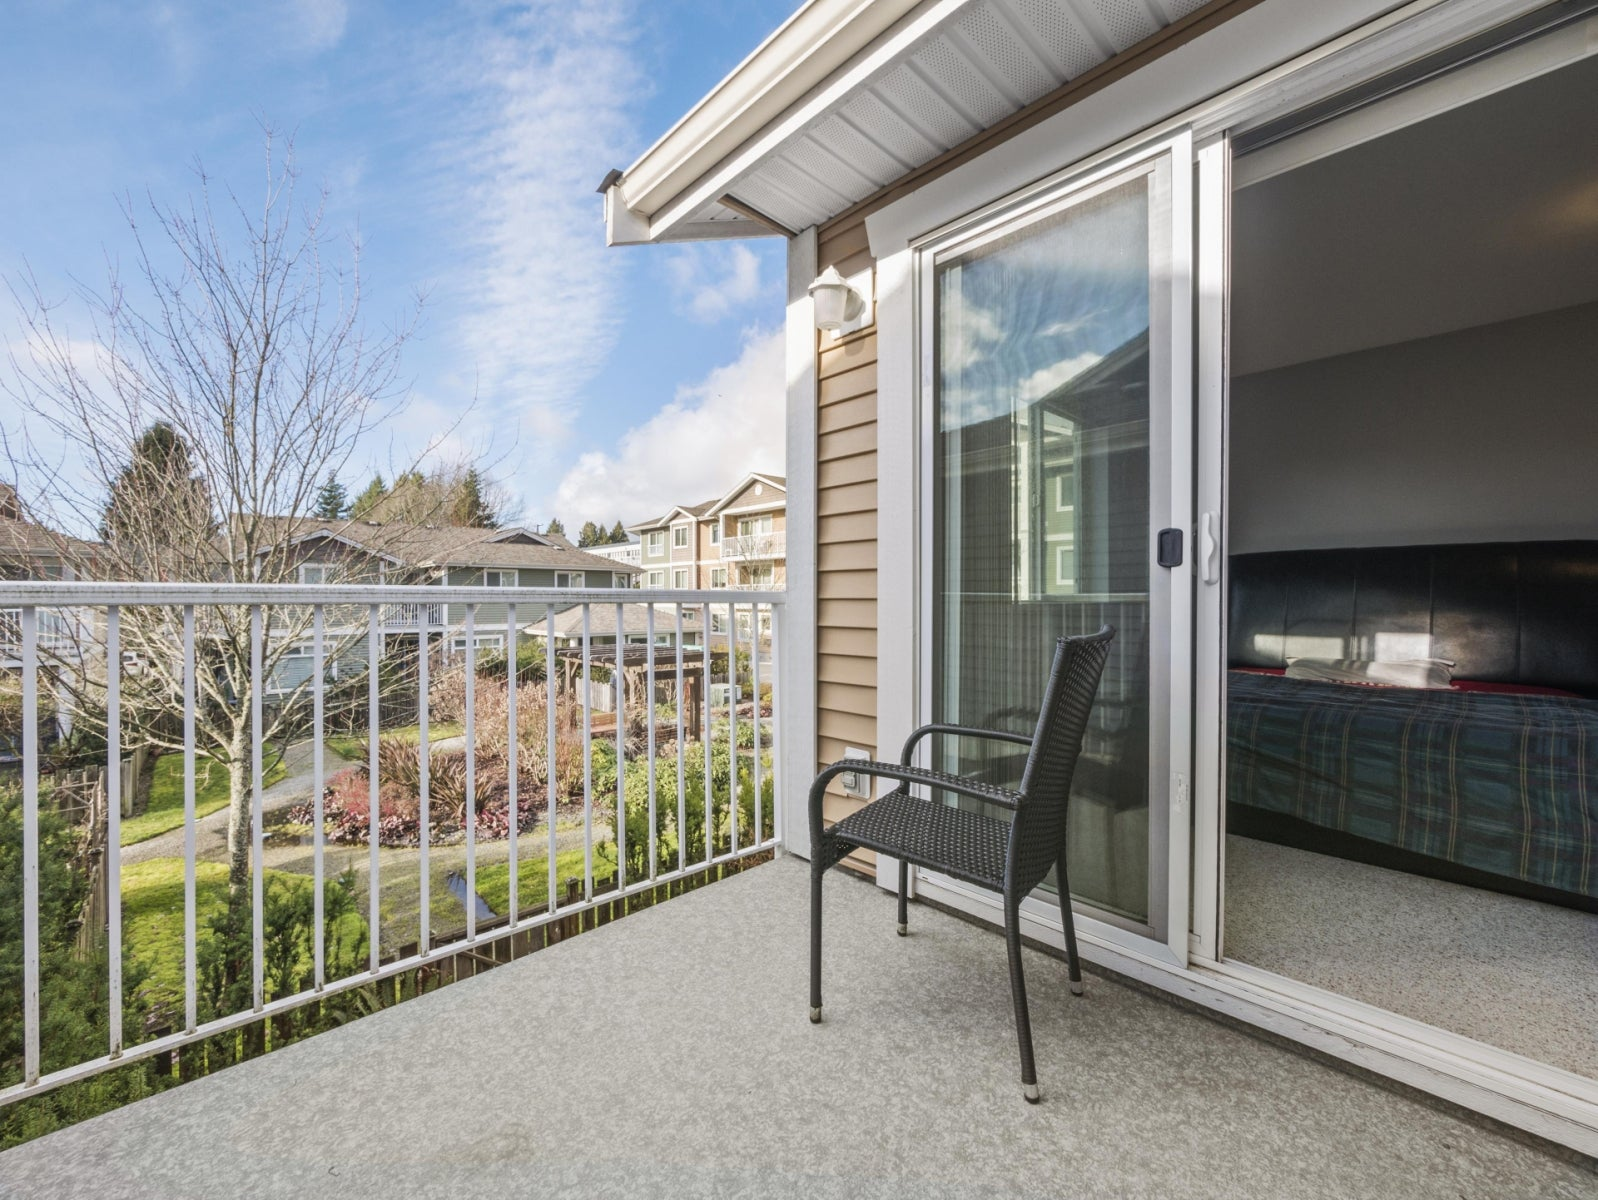 11 624 SHAW ROAD - Gibsons & Area Townhouse for sale, 3 Bedrooms (R2234910) #9